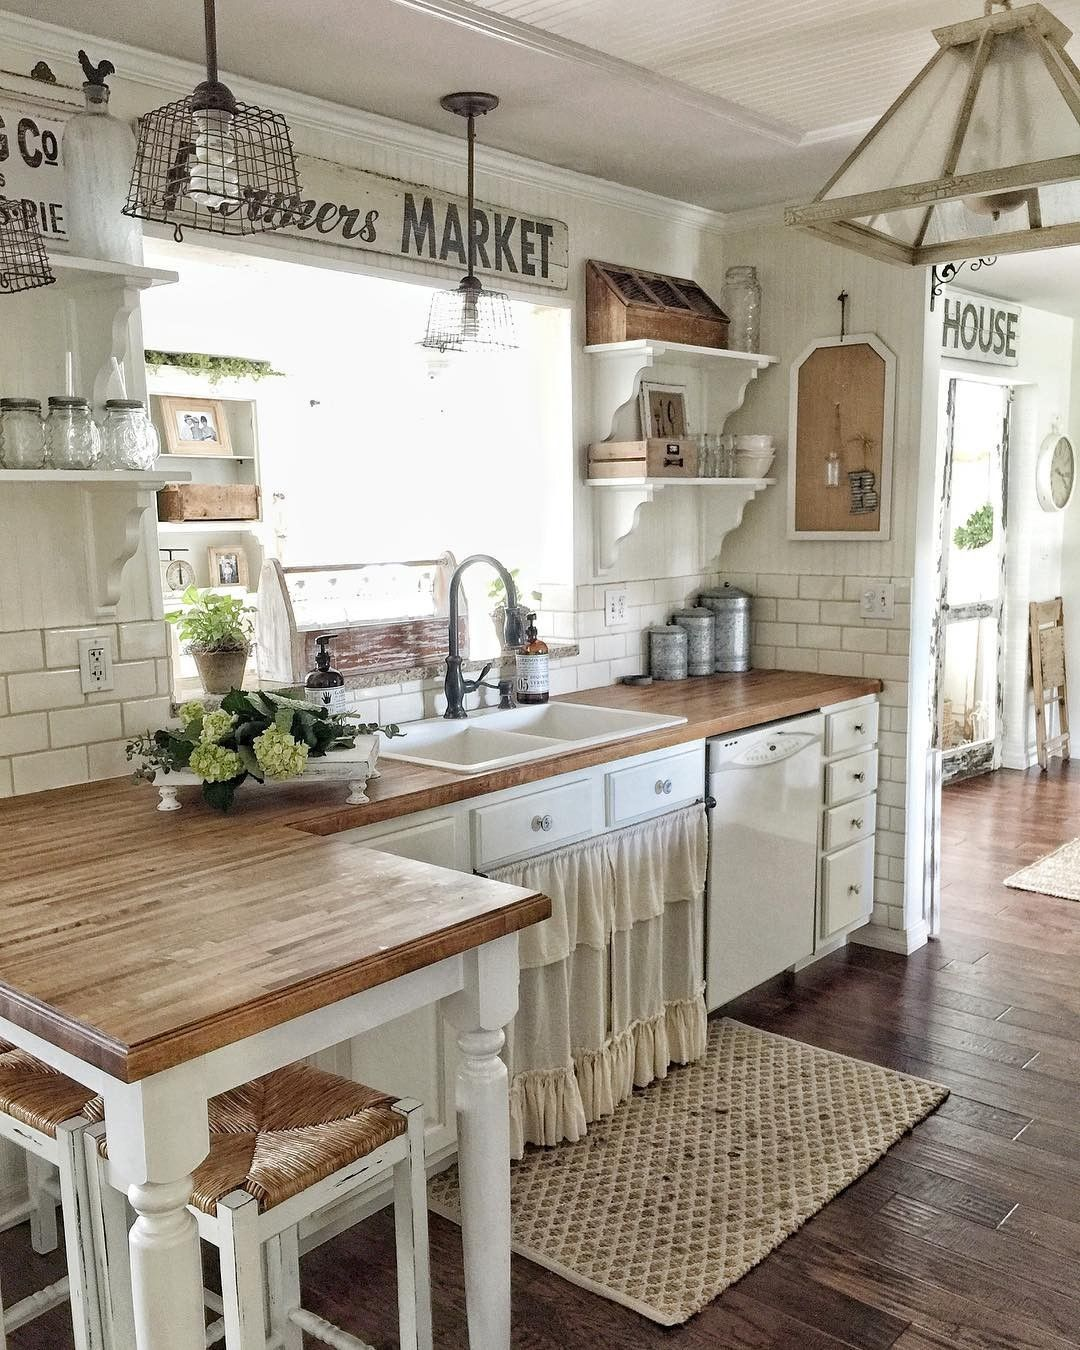 20 farmhouse kitchen ideas on a budget for 2018 | küche | pinterest